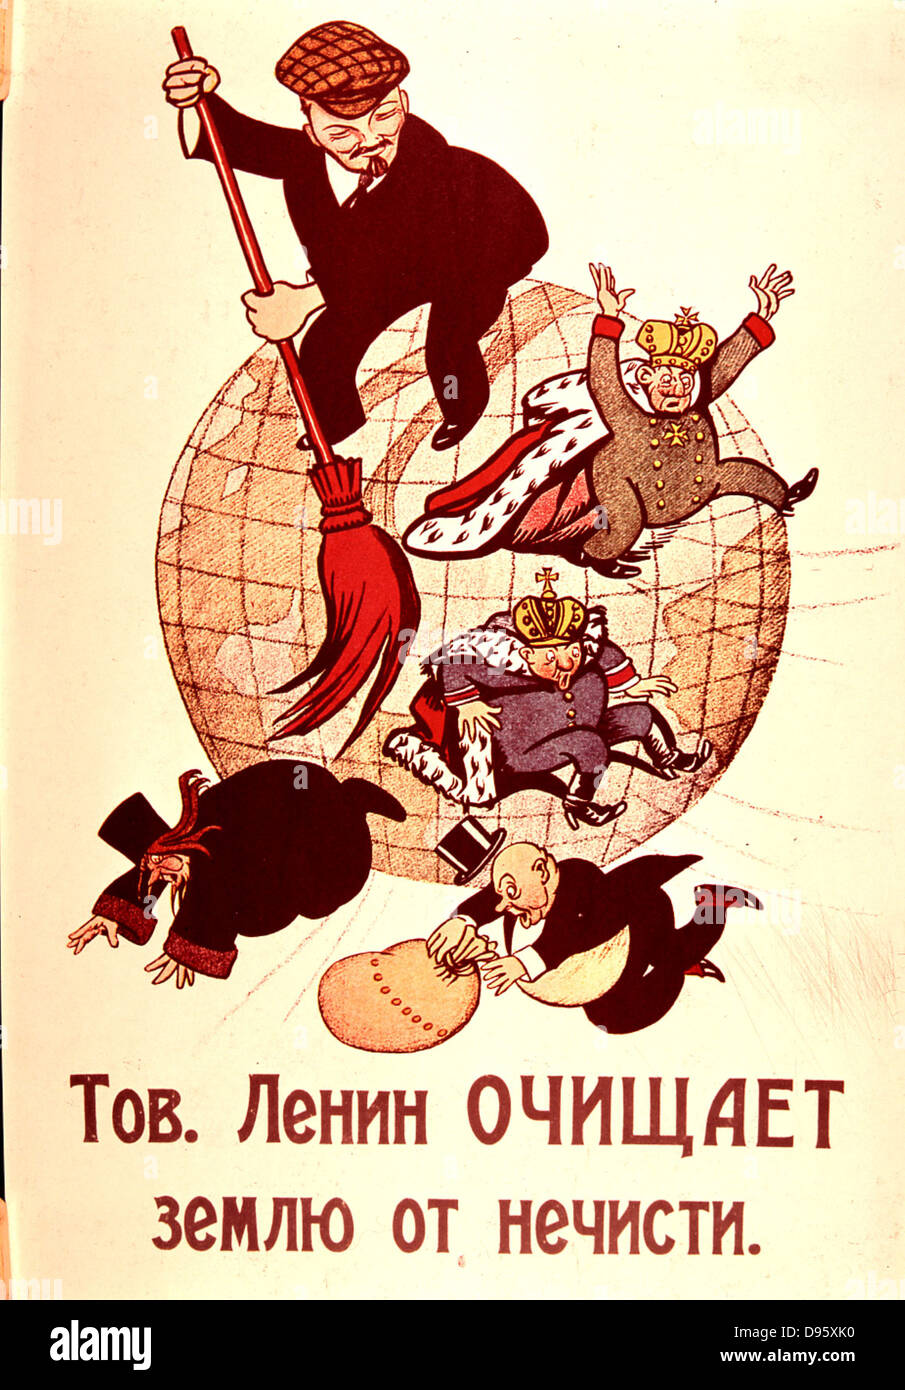 Lenin sweeping Monarchy, Church and Bourgeoise from the face of the earth. Cartoon. - Stock Image